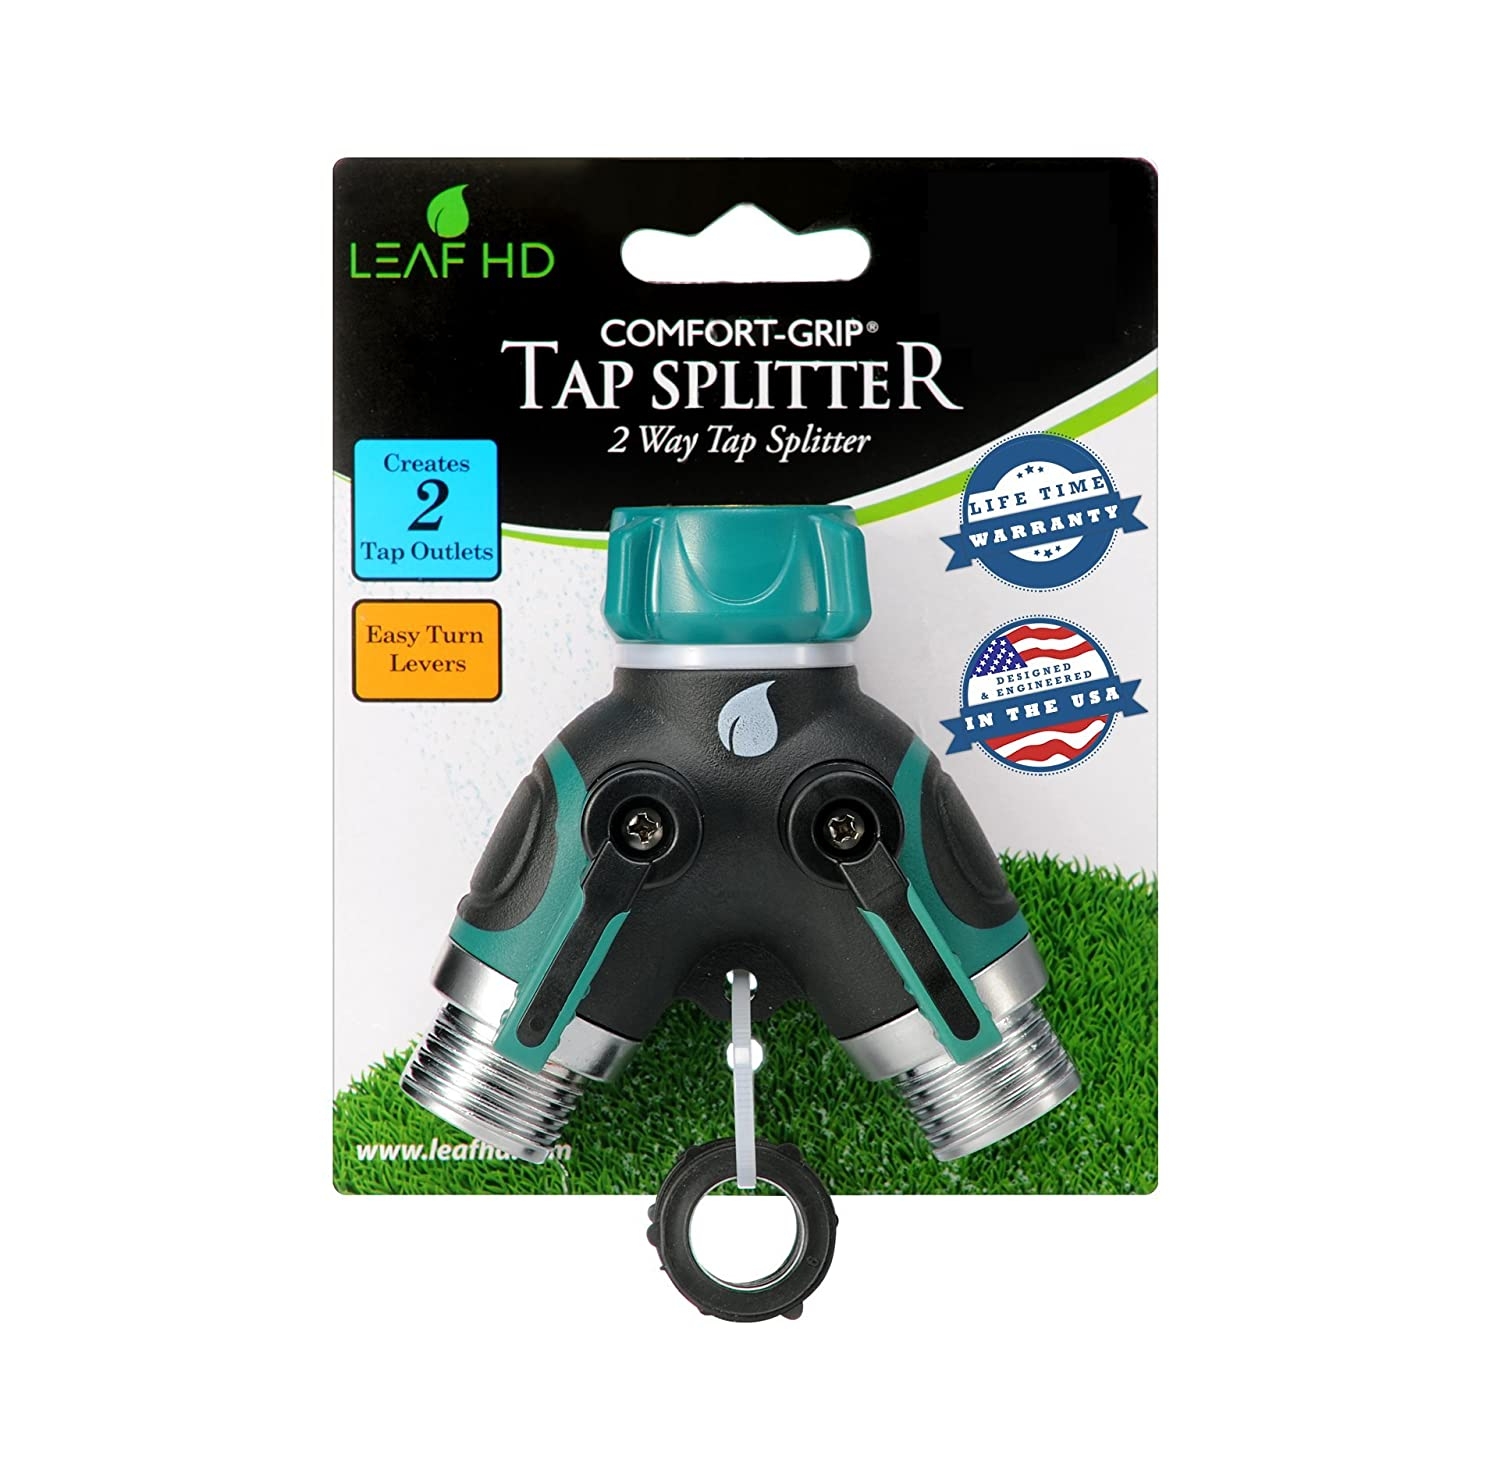 Amazon.com : LEAF HD ZX 9 1 Garden Hose Splitter Y Ball Valve Connector  With Soft Touch EZ Turn Levers Designed In MN, USA Bundle With 3 Extra  Rubber ...